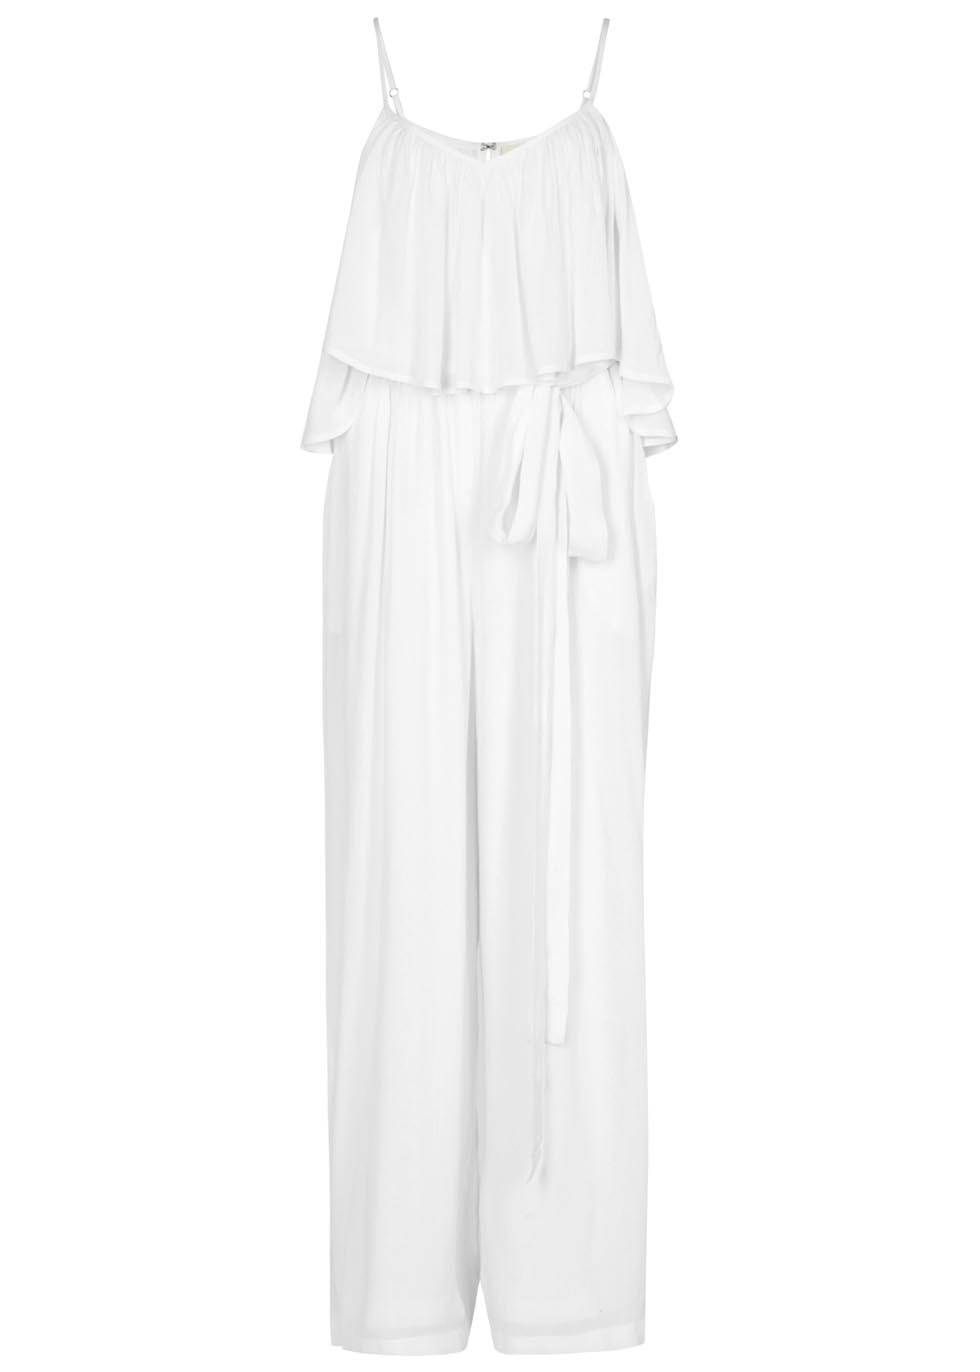 Flounce Off The Shoulder Gauze Jumpsuit - length: standard; sleeve style: spaghetti straps; fit: fitted at waist; pattern: plain; waist detail: belted waist/tie at waist/drawstring; predominant colour: ivory/cream; occasions: casual, holiday; neckline: scoop; fibres: polyester/polyamide - 100%; sleeve length: sleeveless; texture group: sheer fabrics/chiffon/organza etc.; style: jumpsuit; bust detail: bulky details at bust; pattern type: fabric; season: s/s 2016; wardrobe: holiday